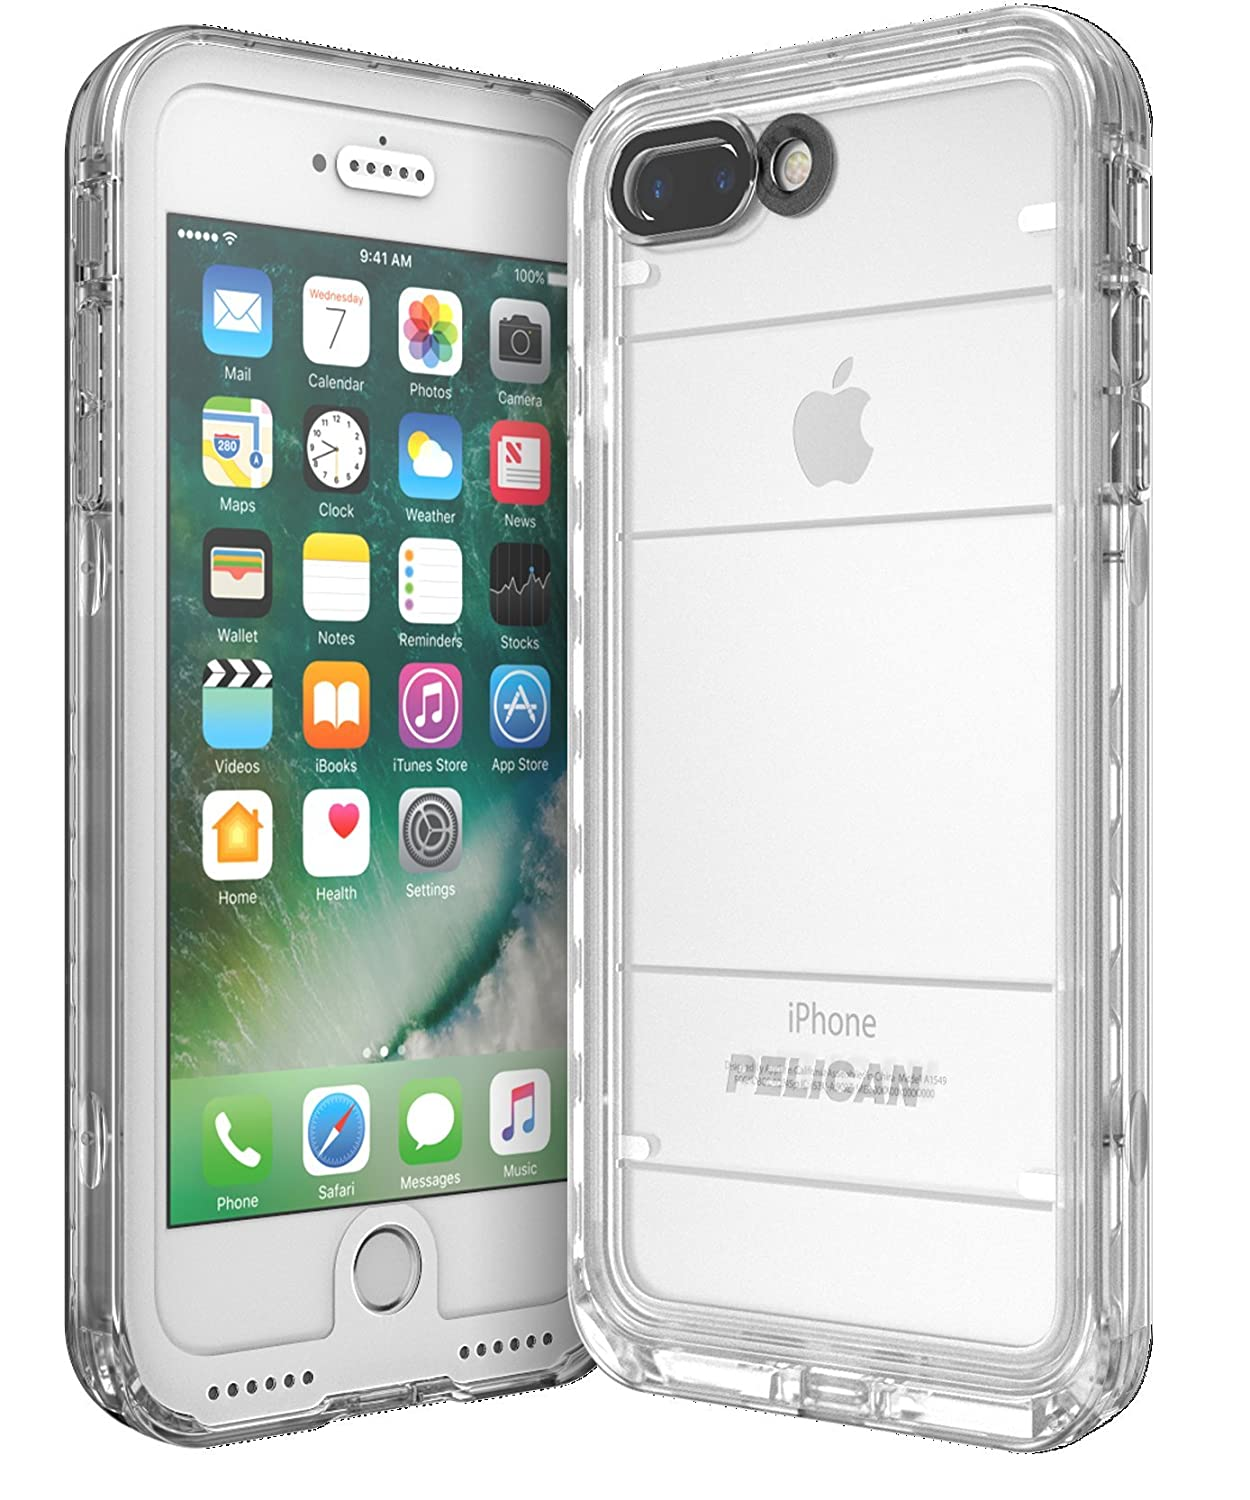 amazon com pelican cell phone case for apple iphone 7 plus whiteamazon com pelican cell phone case for apple iphone 7 plus white clear cell phones \u0026 accessories